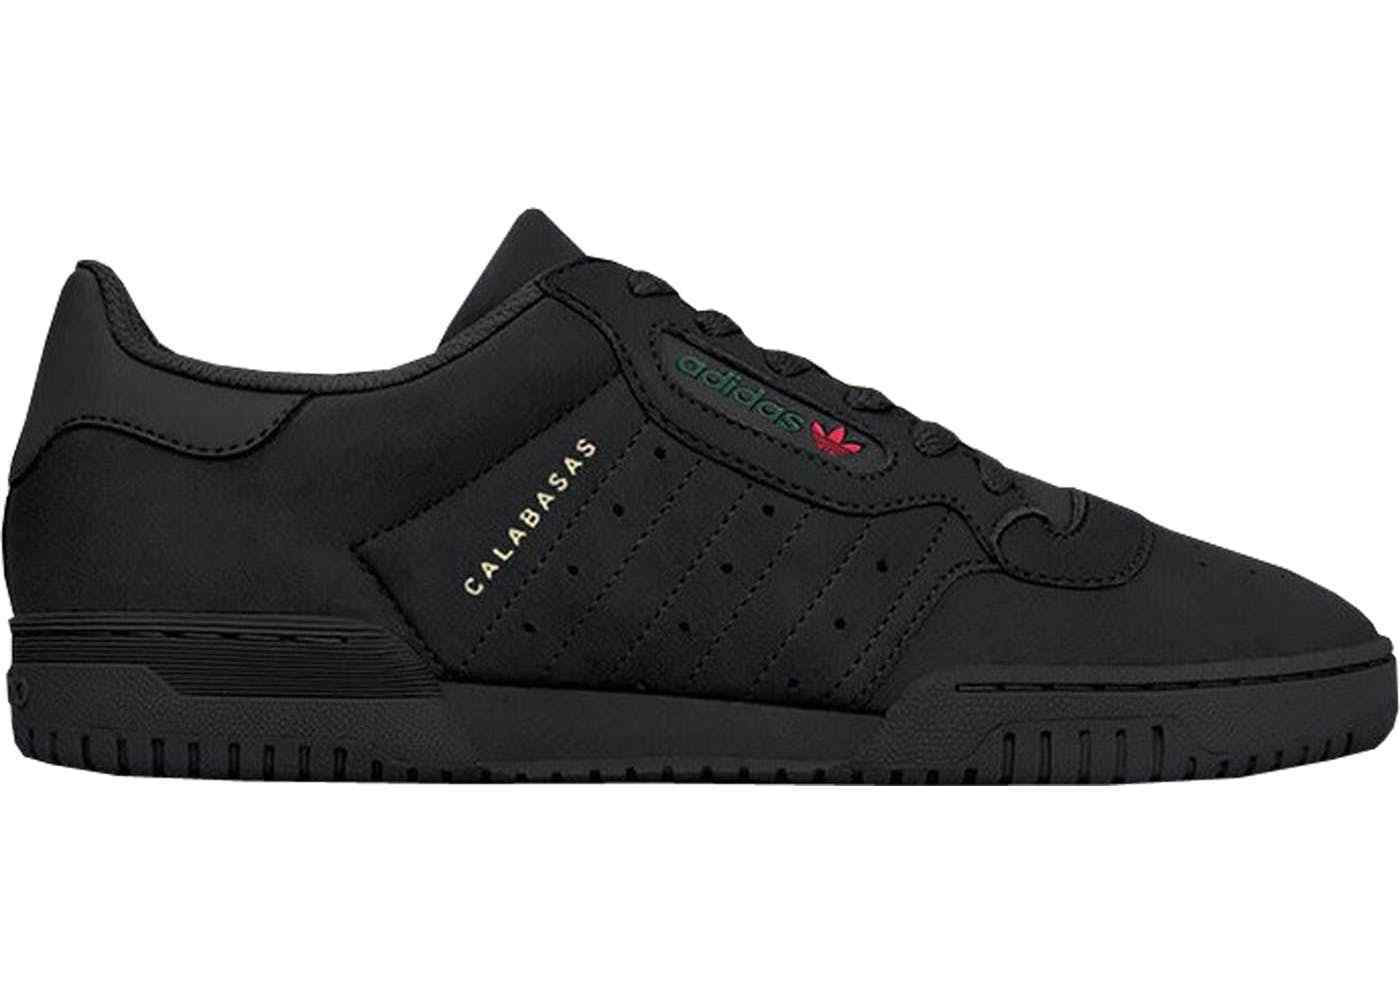 Adidas Yeezy Powerphase Calabasas (Size 8) Core Black Brand New SOLD OUT